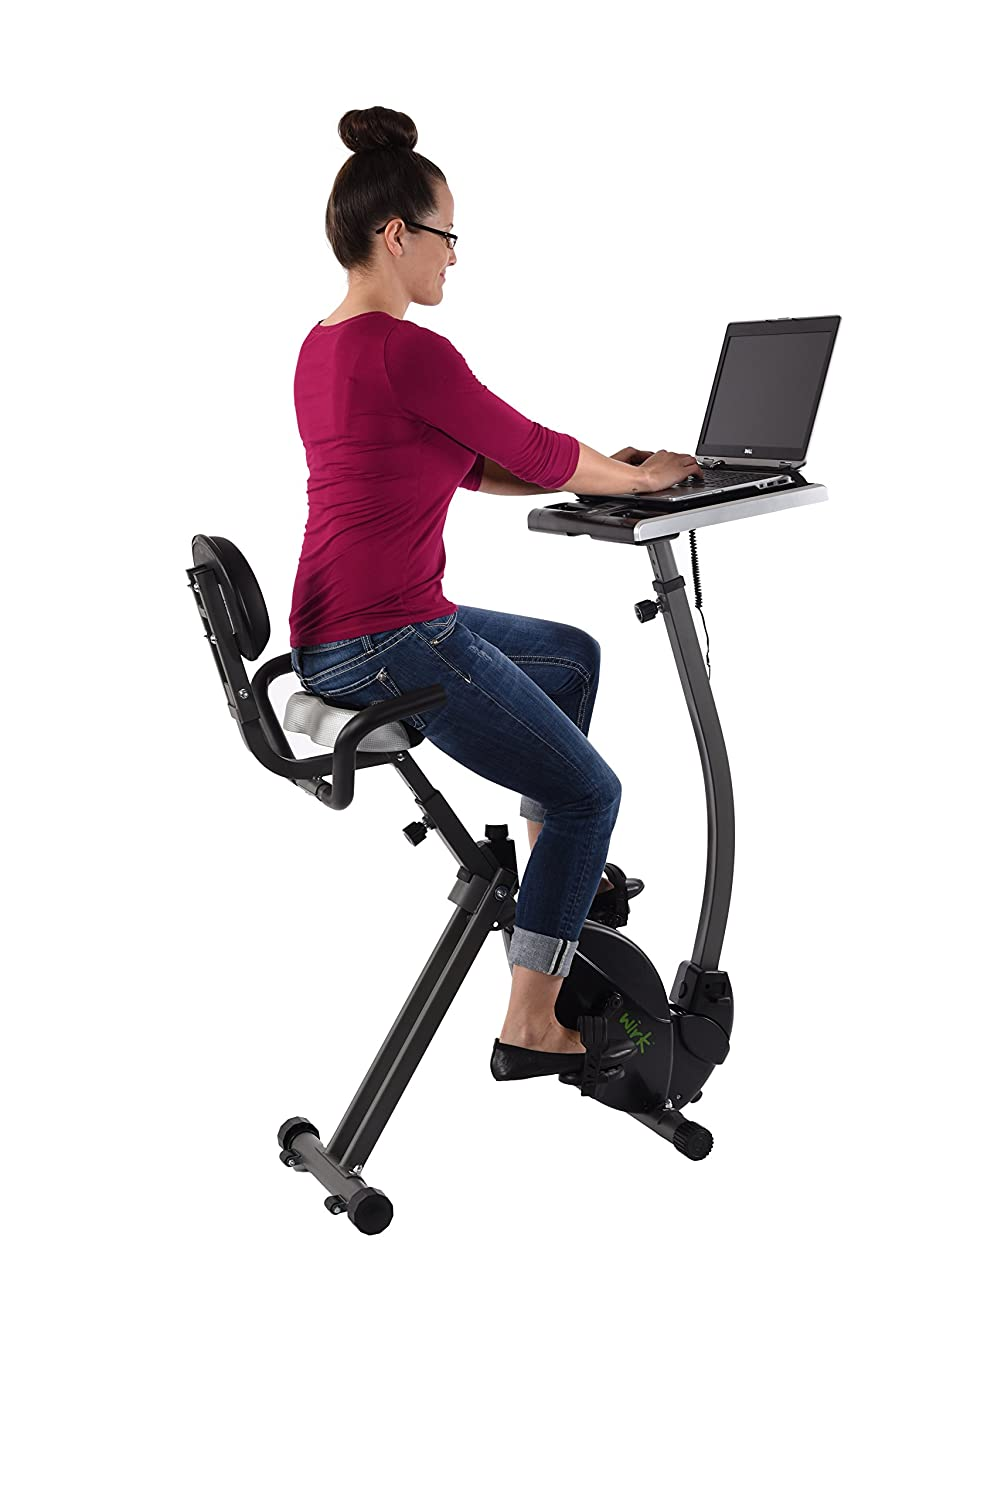 fidgeting posture aims hovr new workout norms make acceptable upend under your swing desk around office turn and to microworkout the at into for business sitting feet a crop lad ladder articles promo